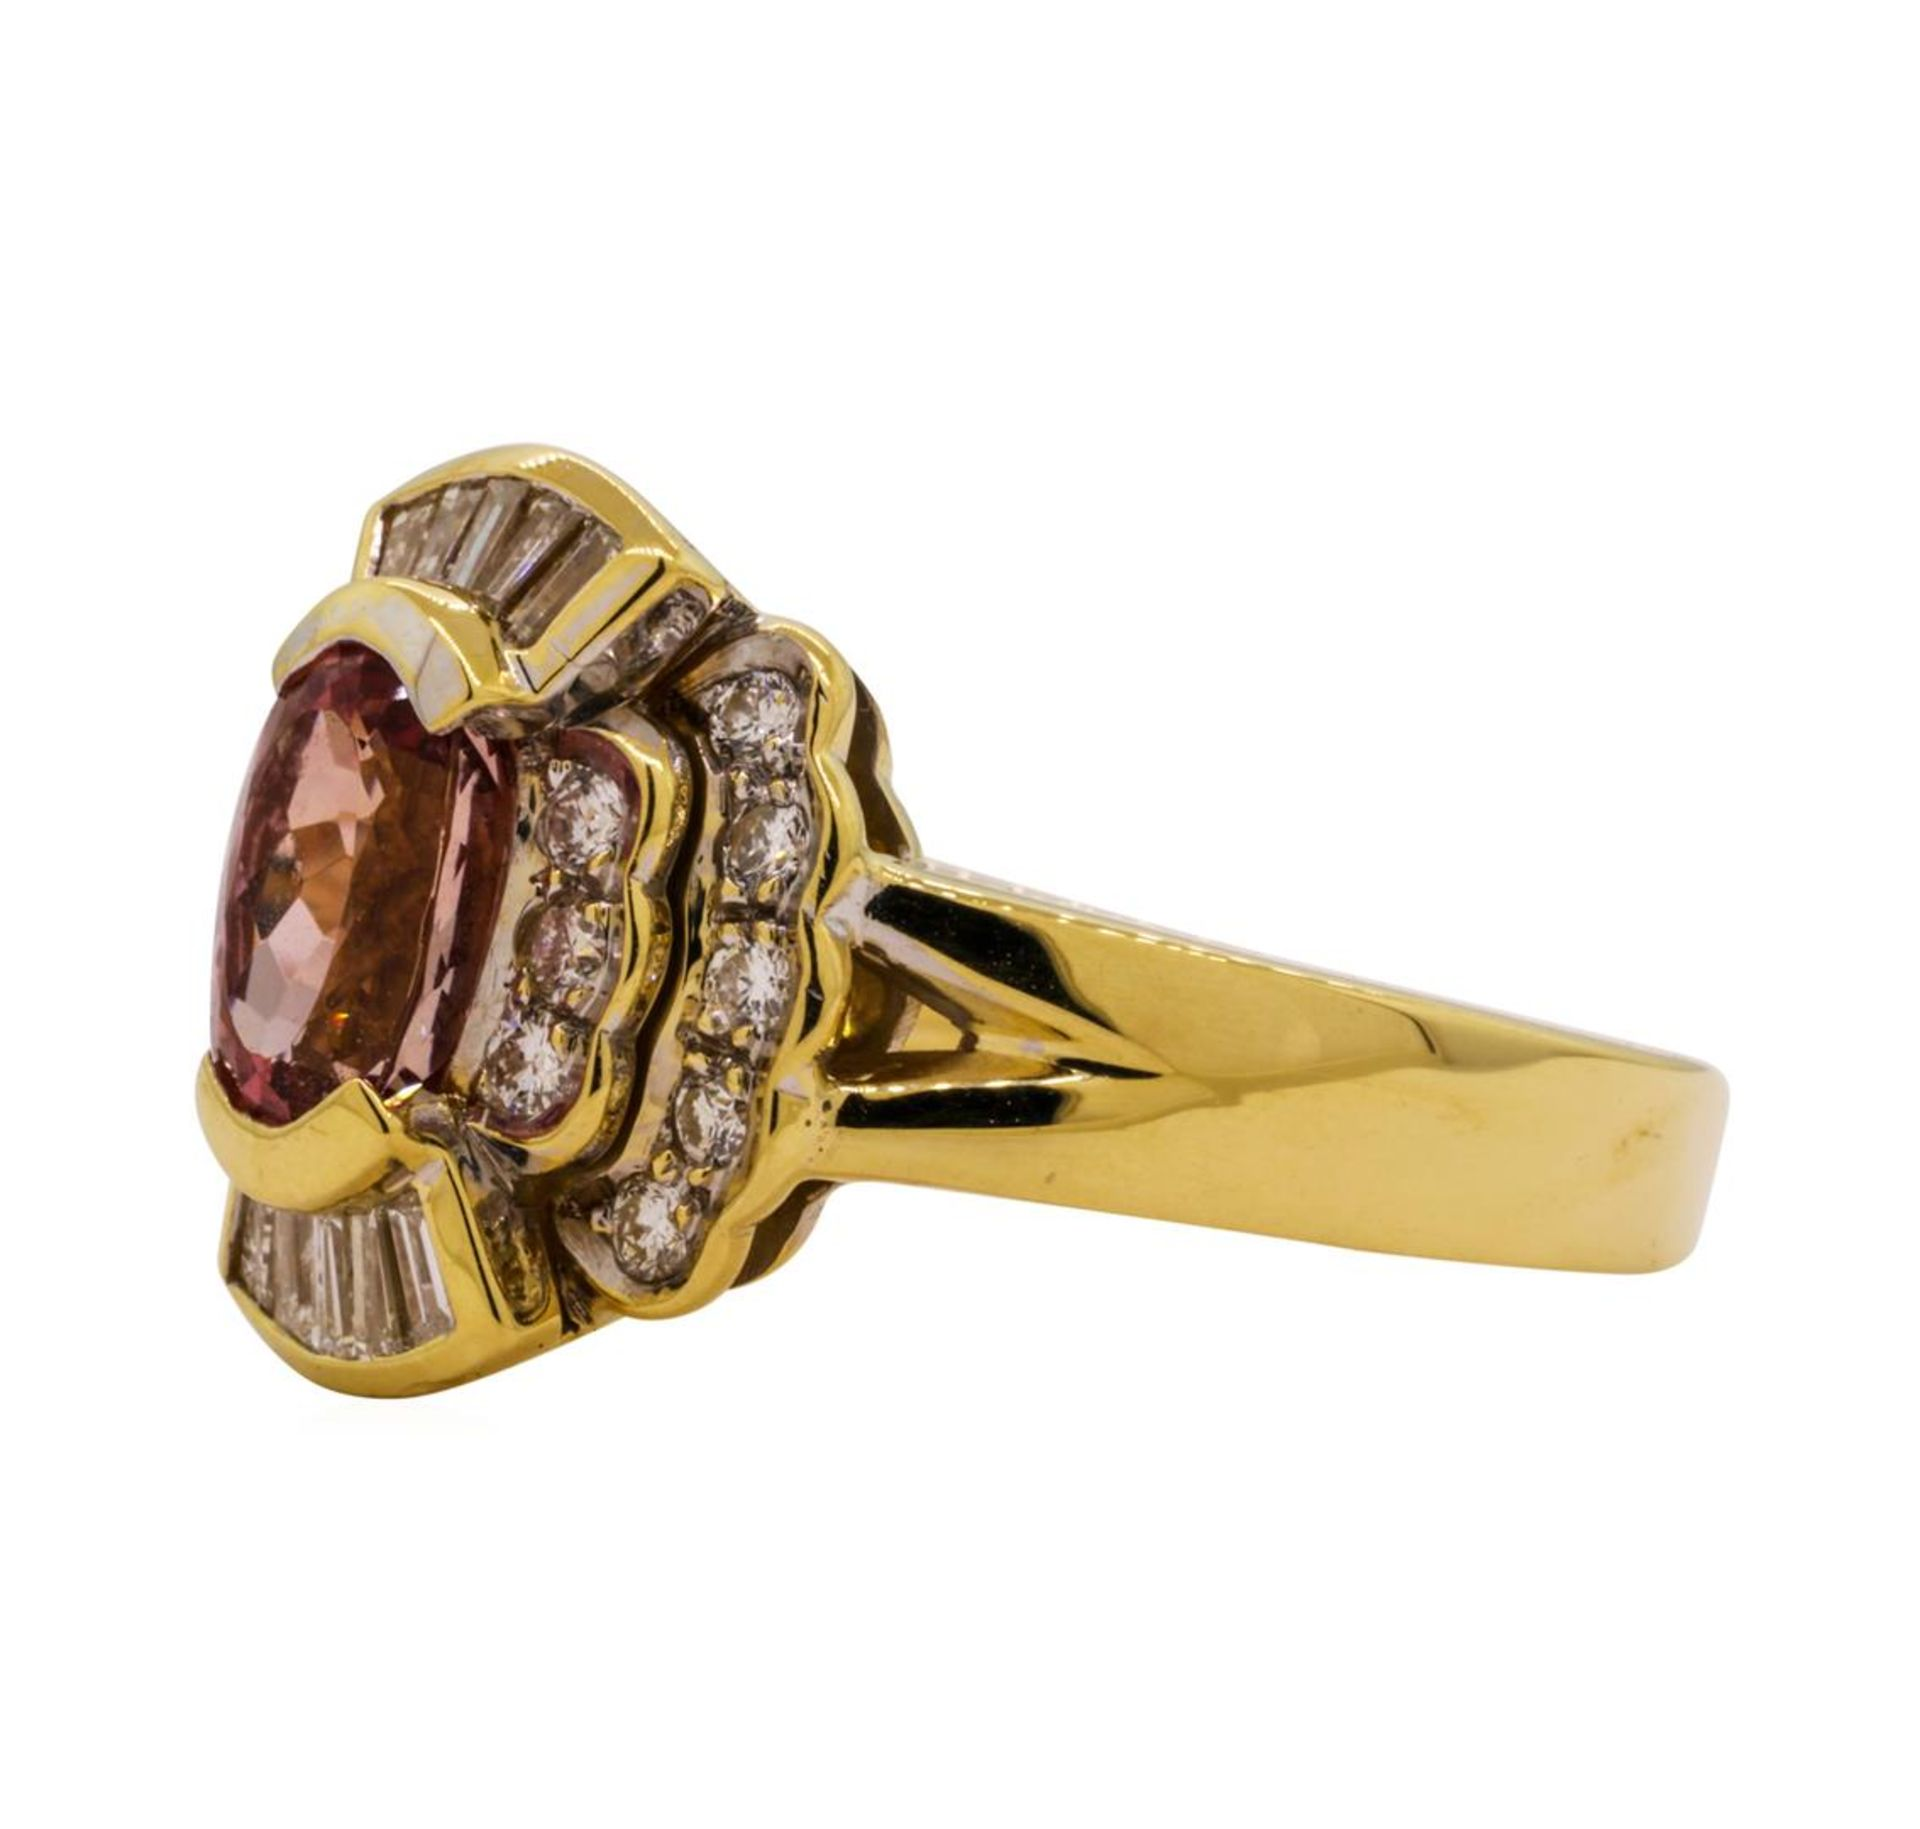 1.82 ctw Pink Spinel and Diamond Ring - 18KT Yellow Gold - Image 2 of 5